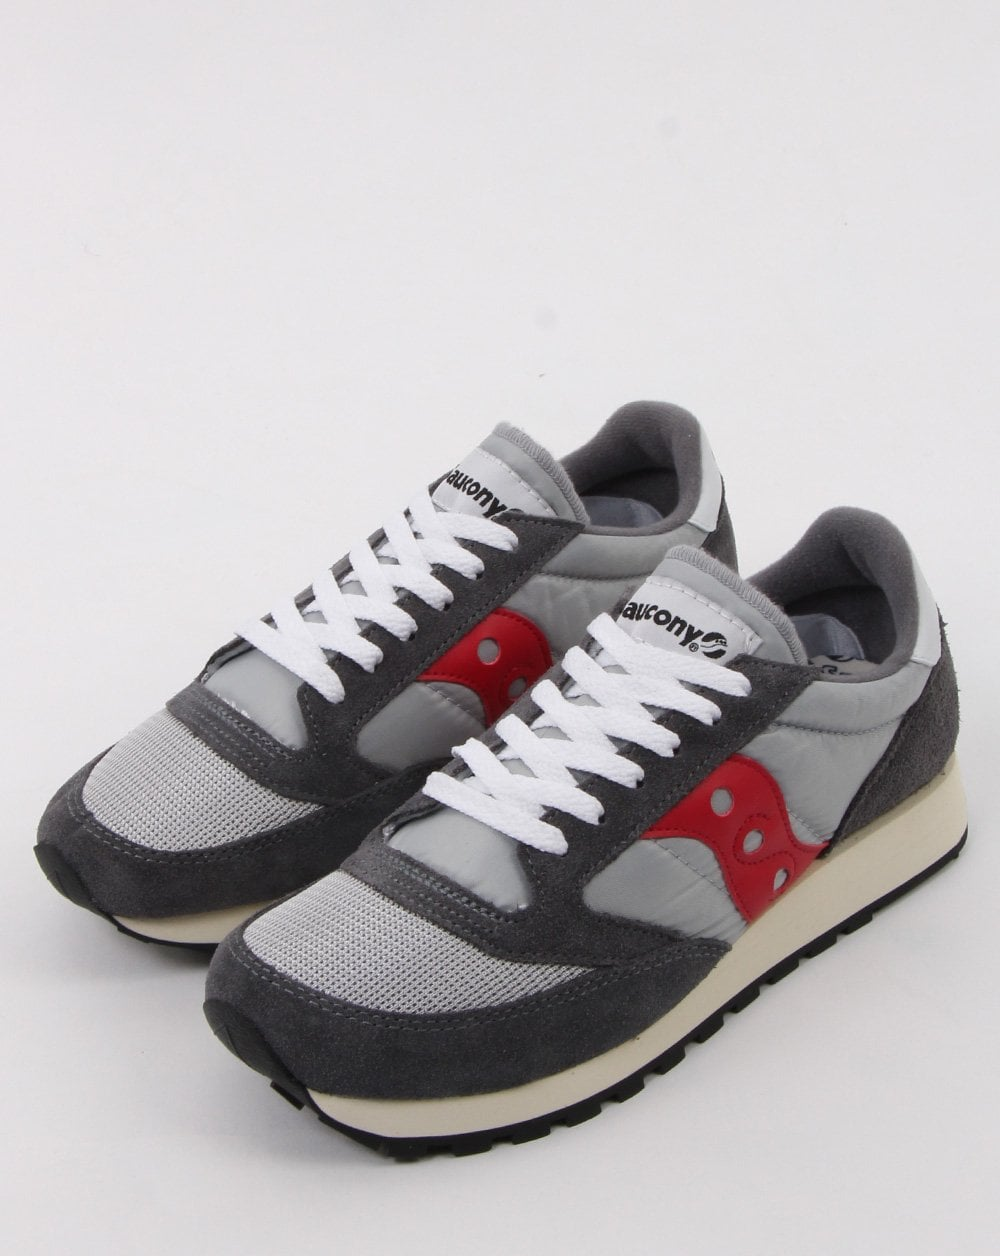 best service 80518 5144e Saucony Jazz Vintage Trainers in Grey/Red | 80s casual classics